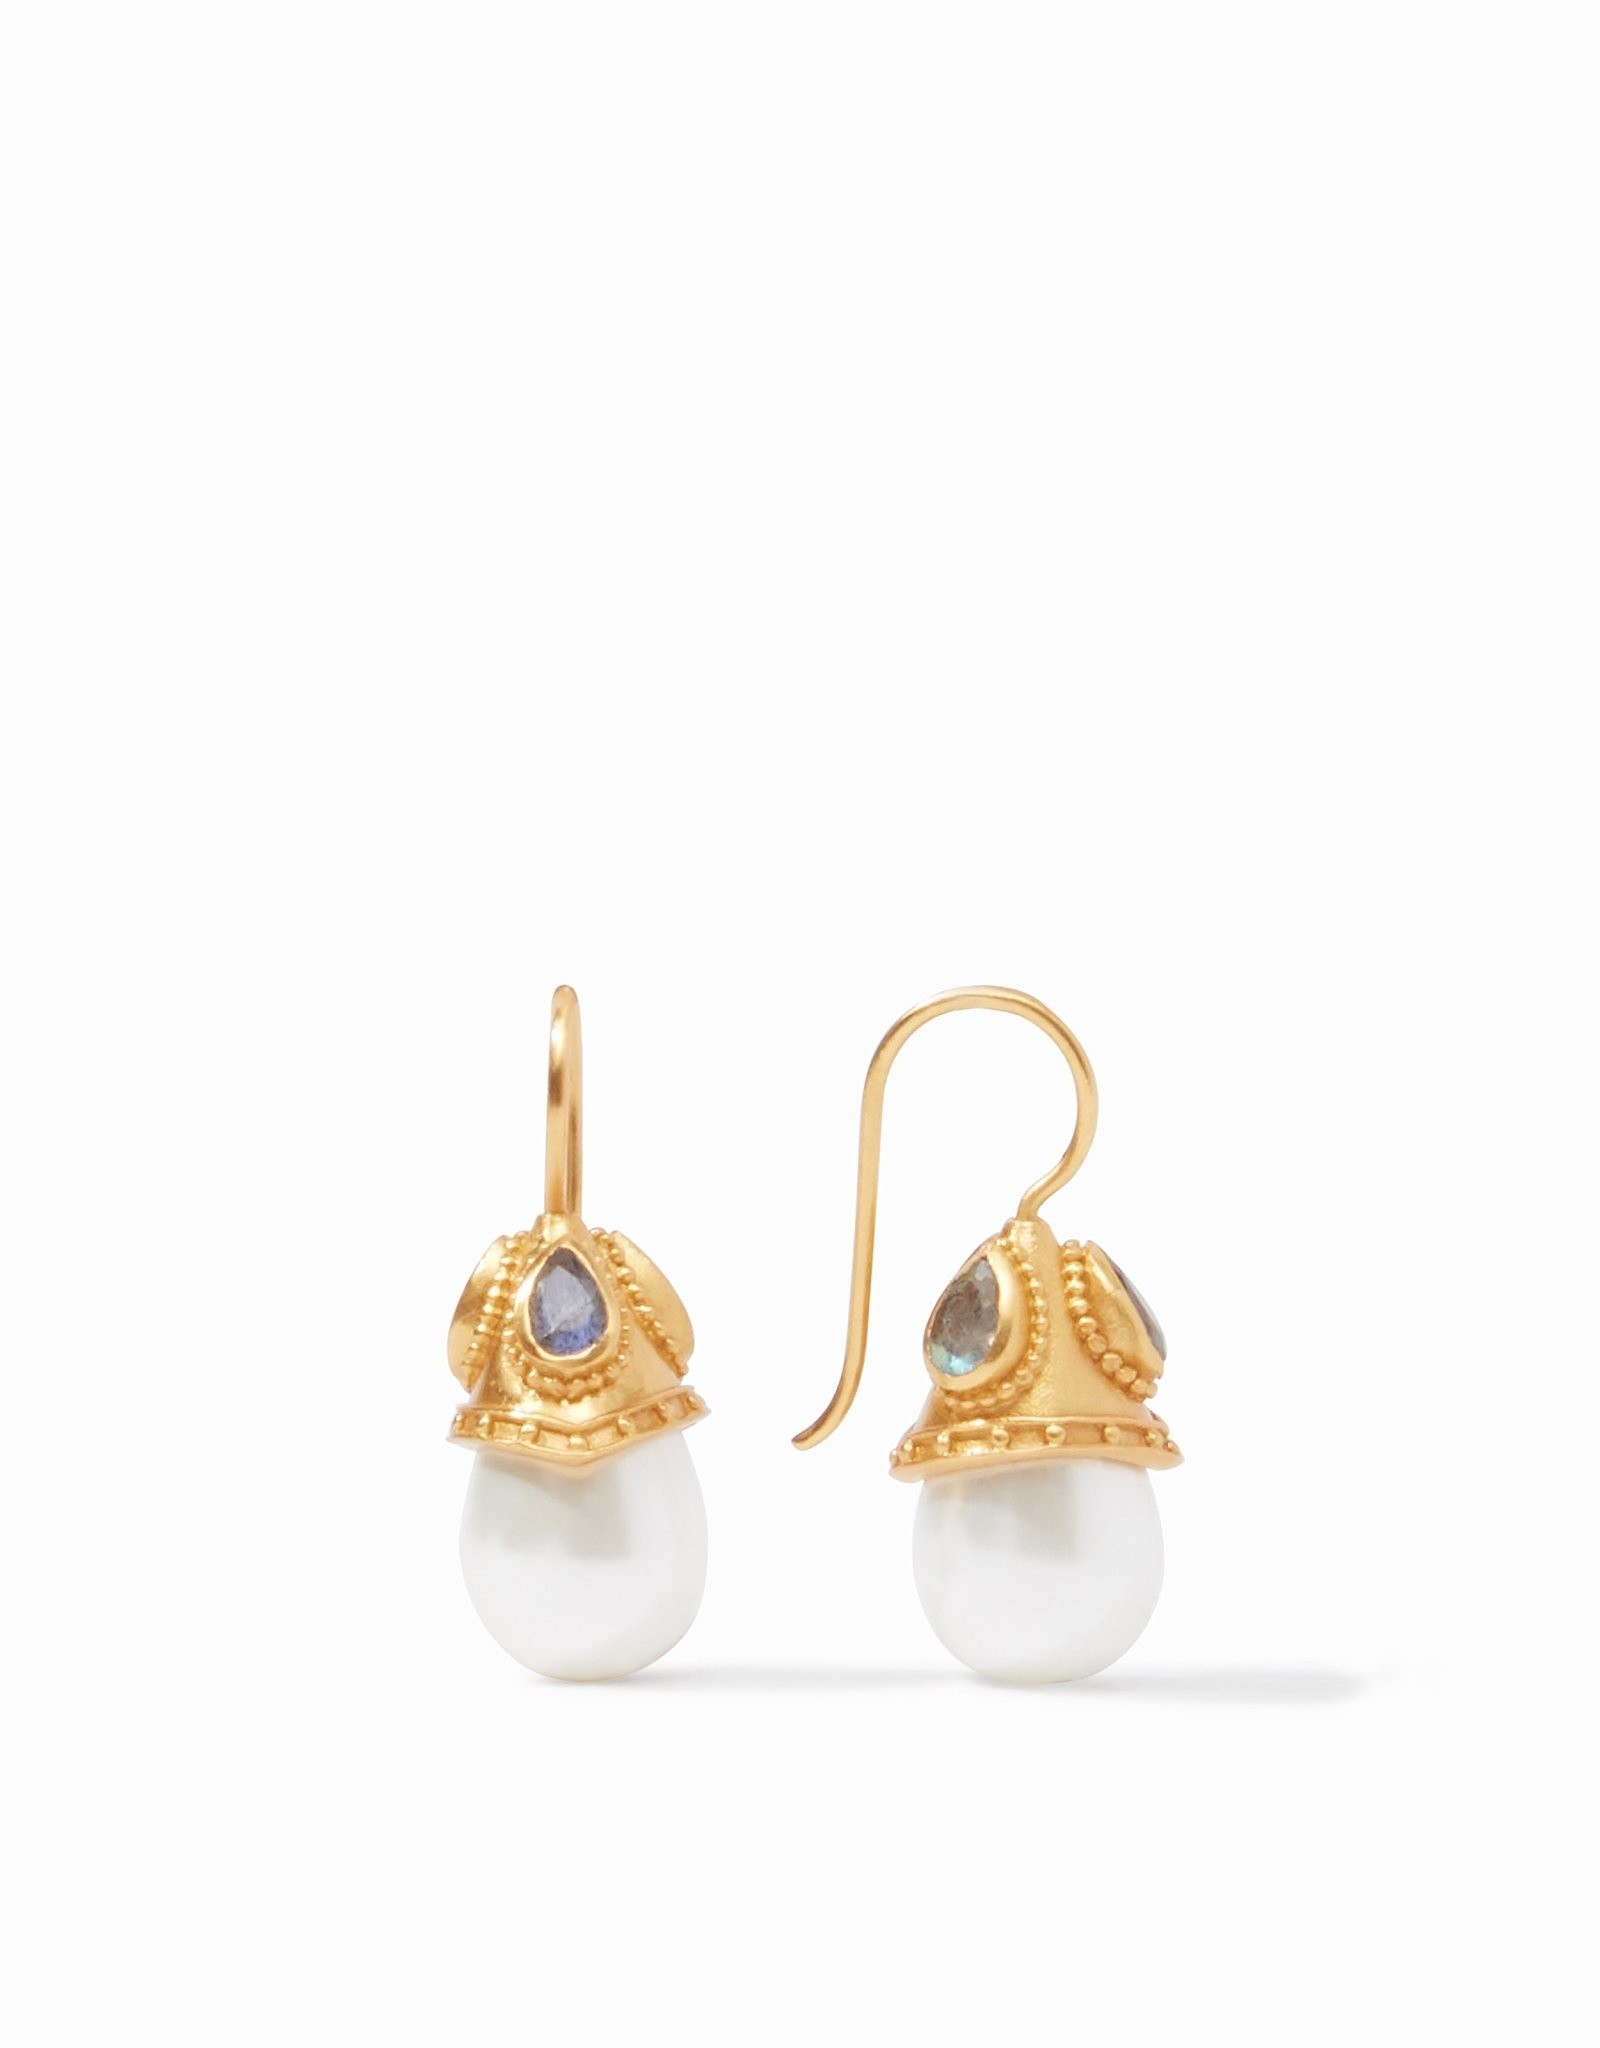 Julie Vos Baroque Demi Earring Gold Pearl with Labradorite Accents